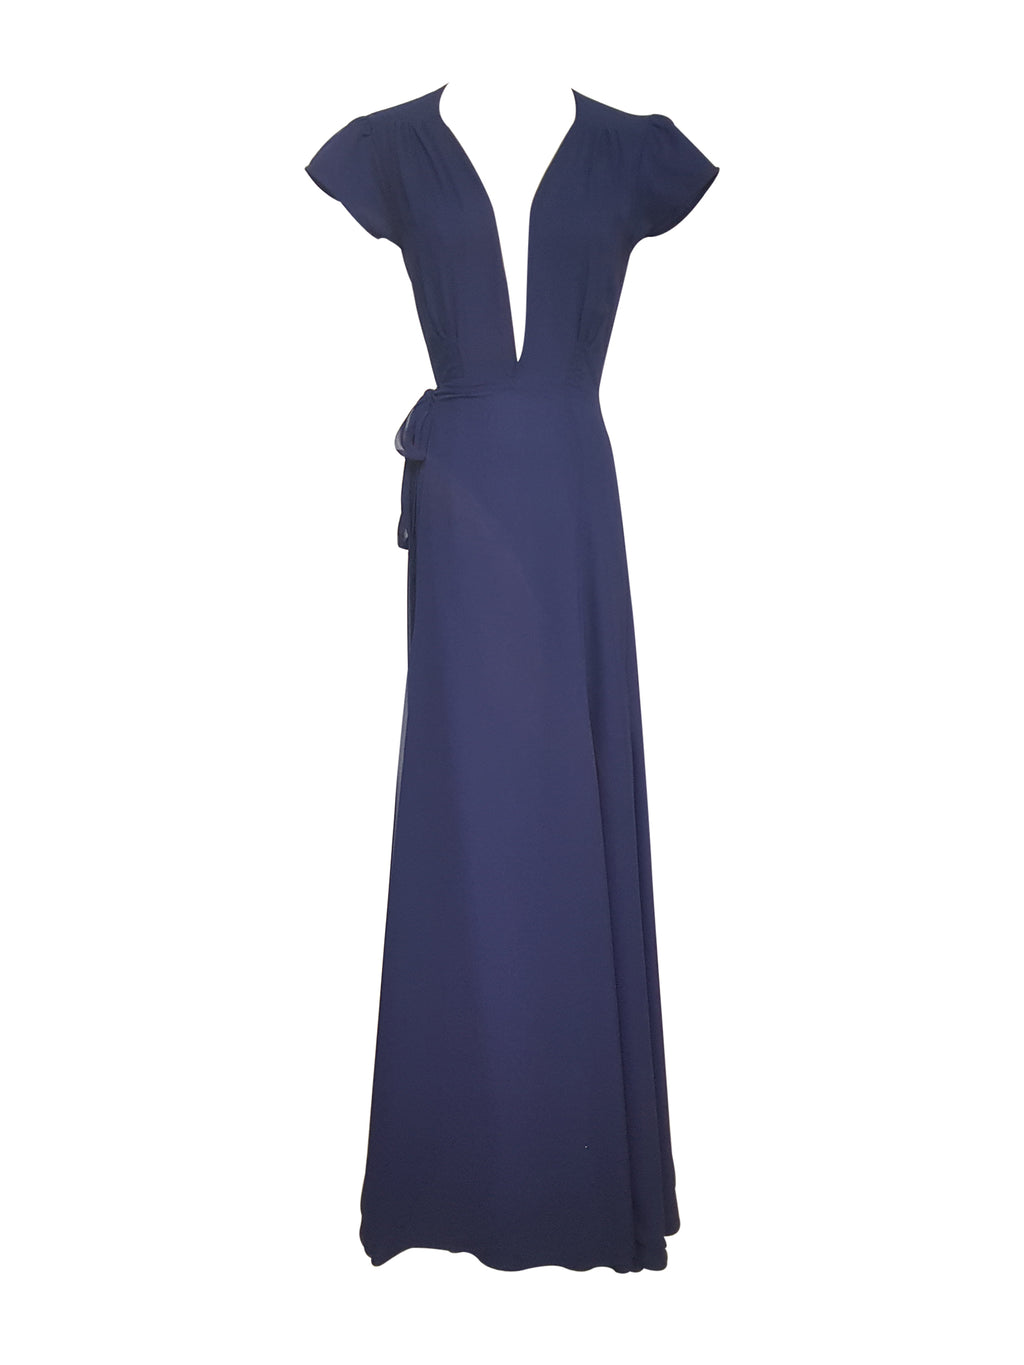 Navy Blue Plunge Neck Wrap Dress